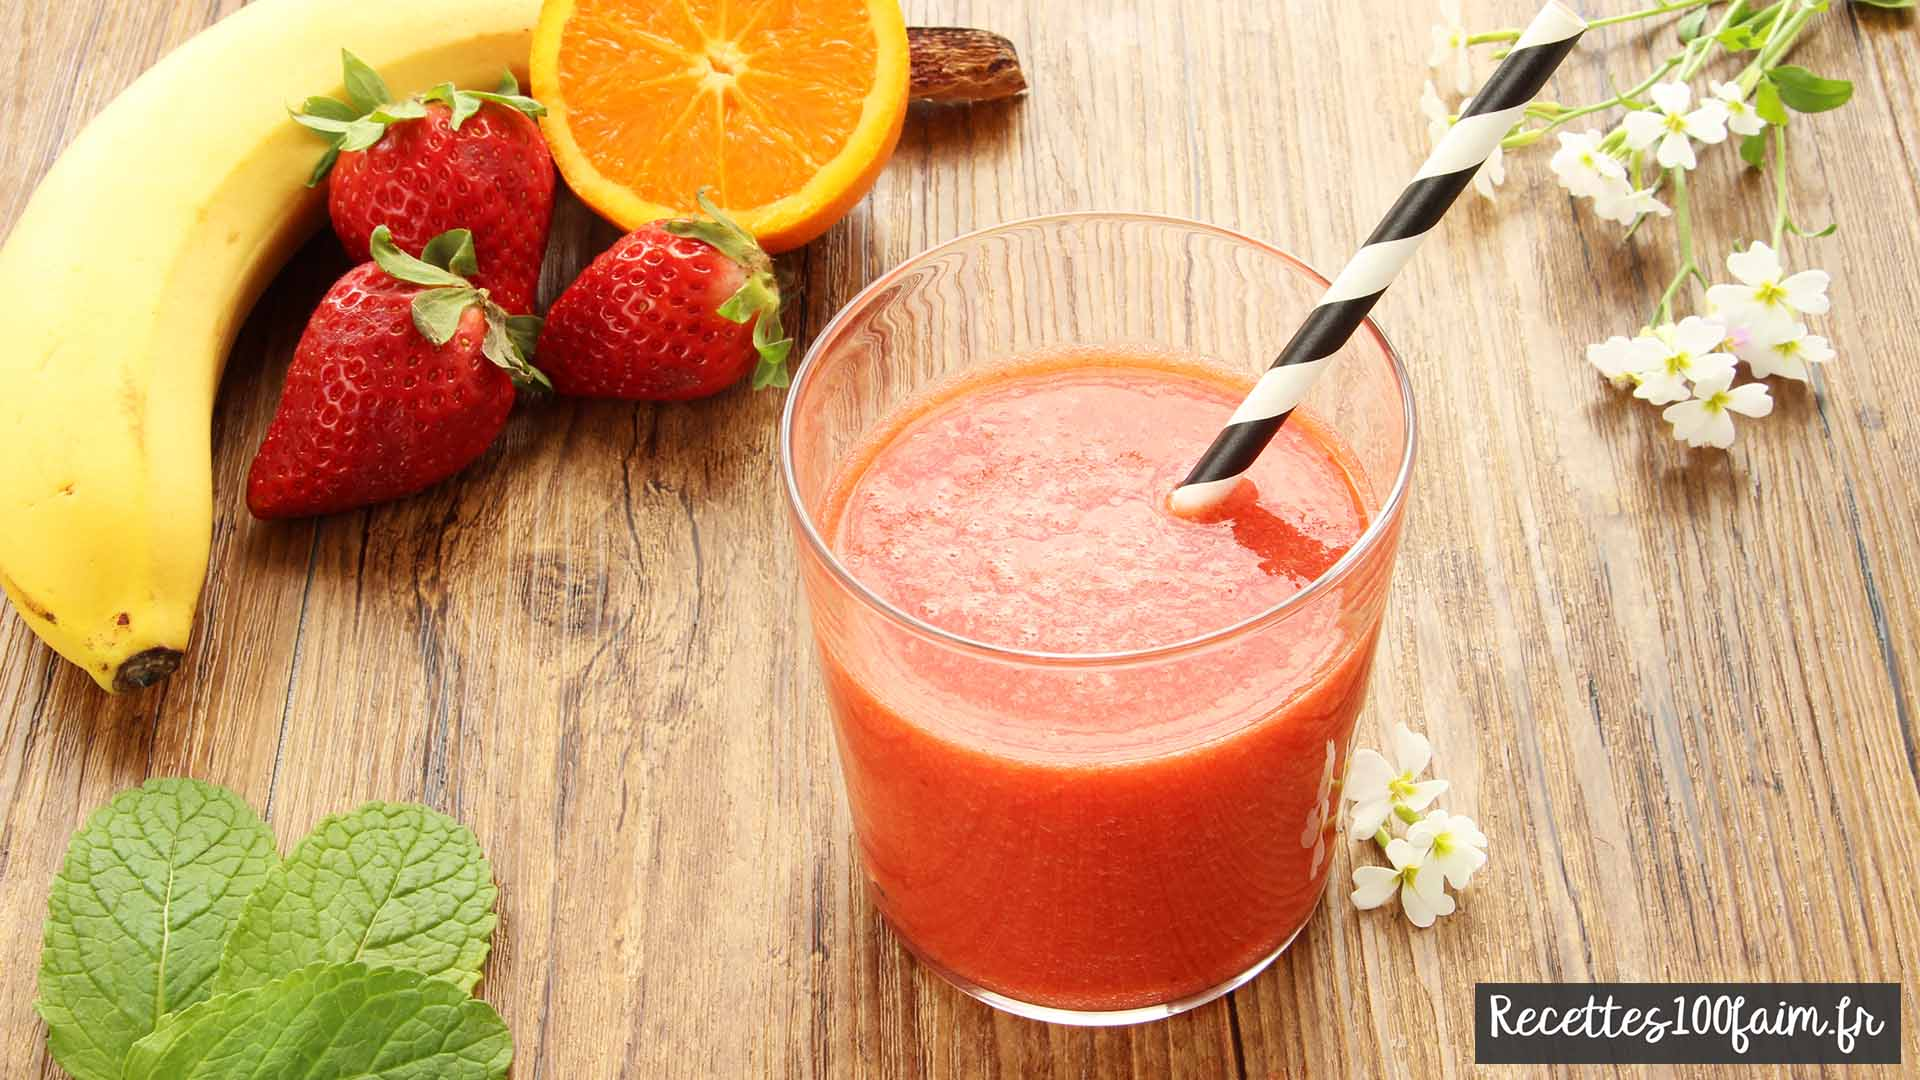 Photo smoothie fraise banane